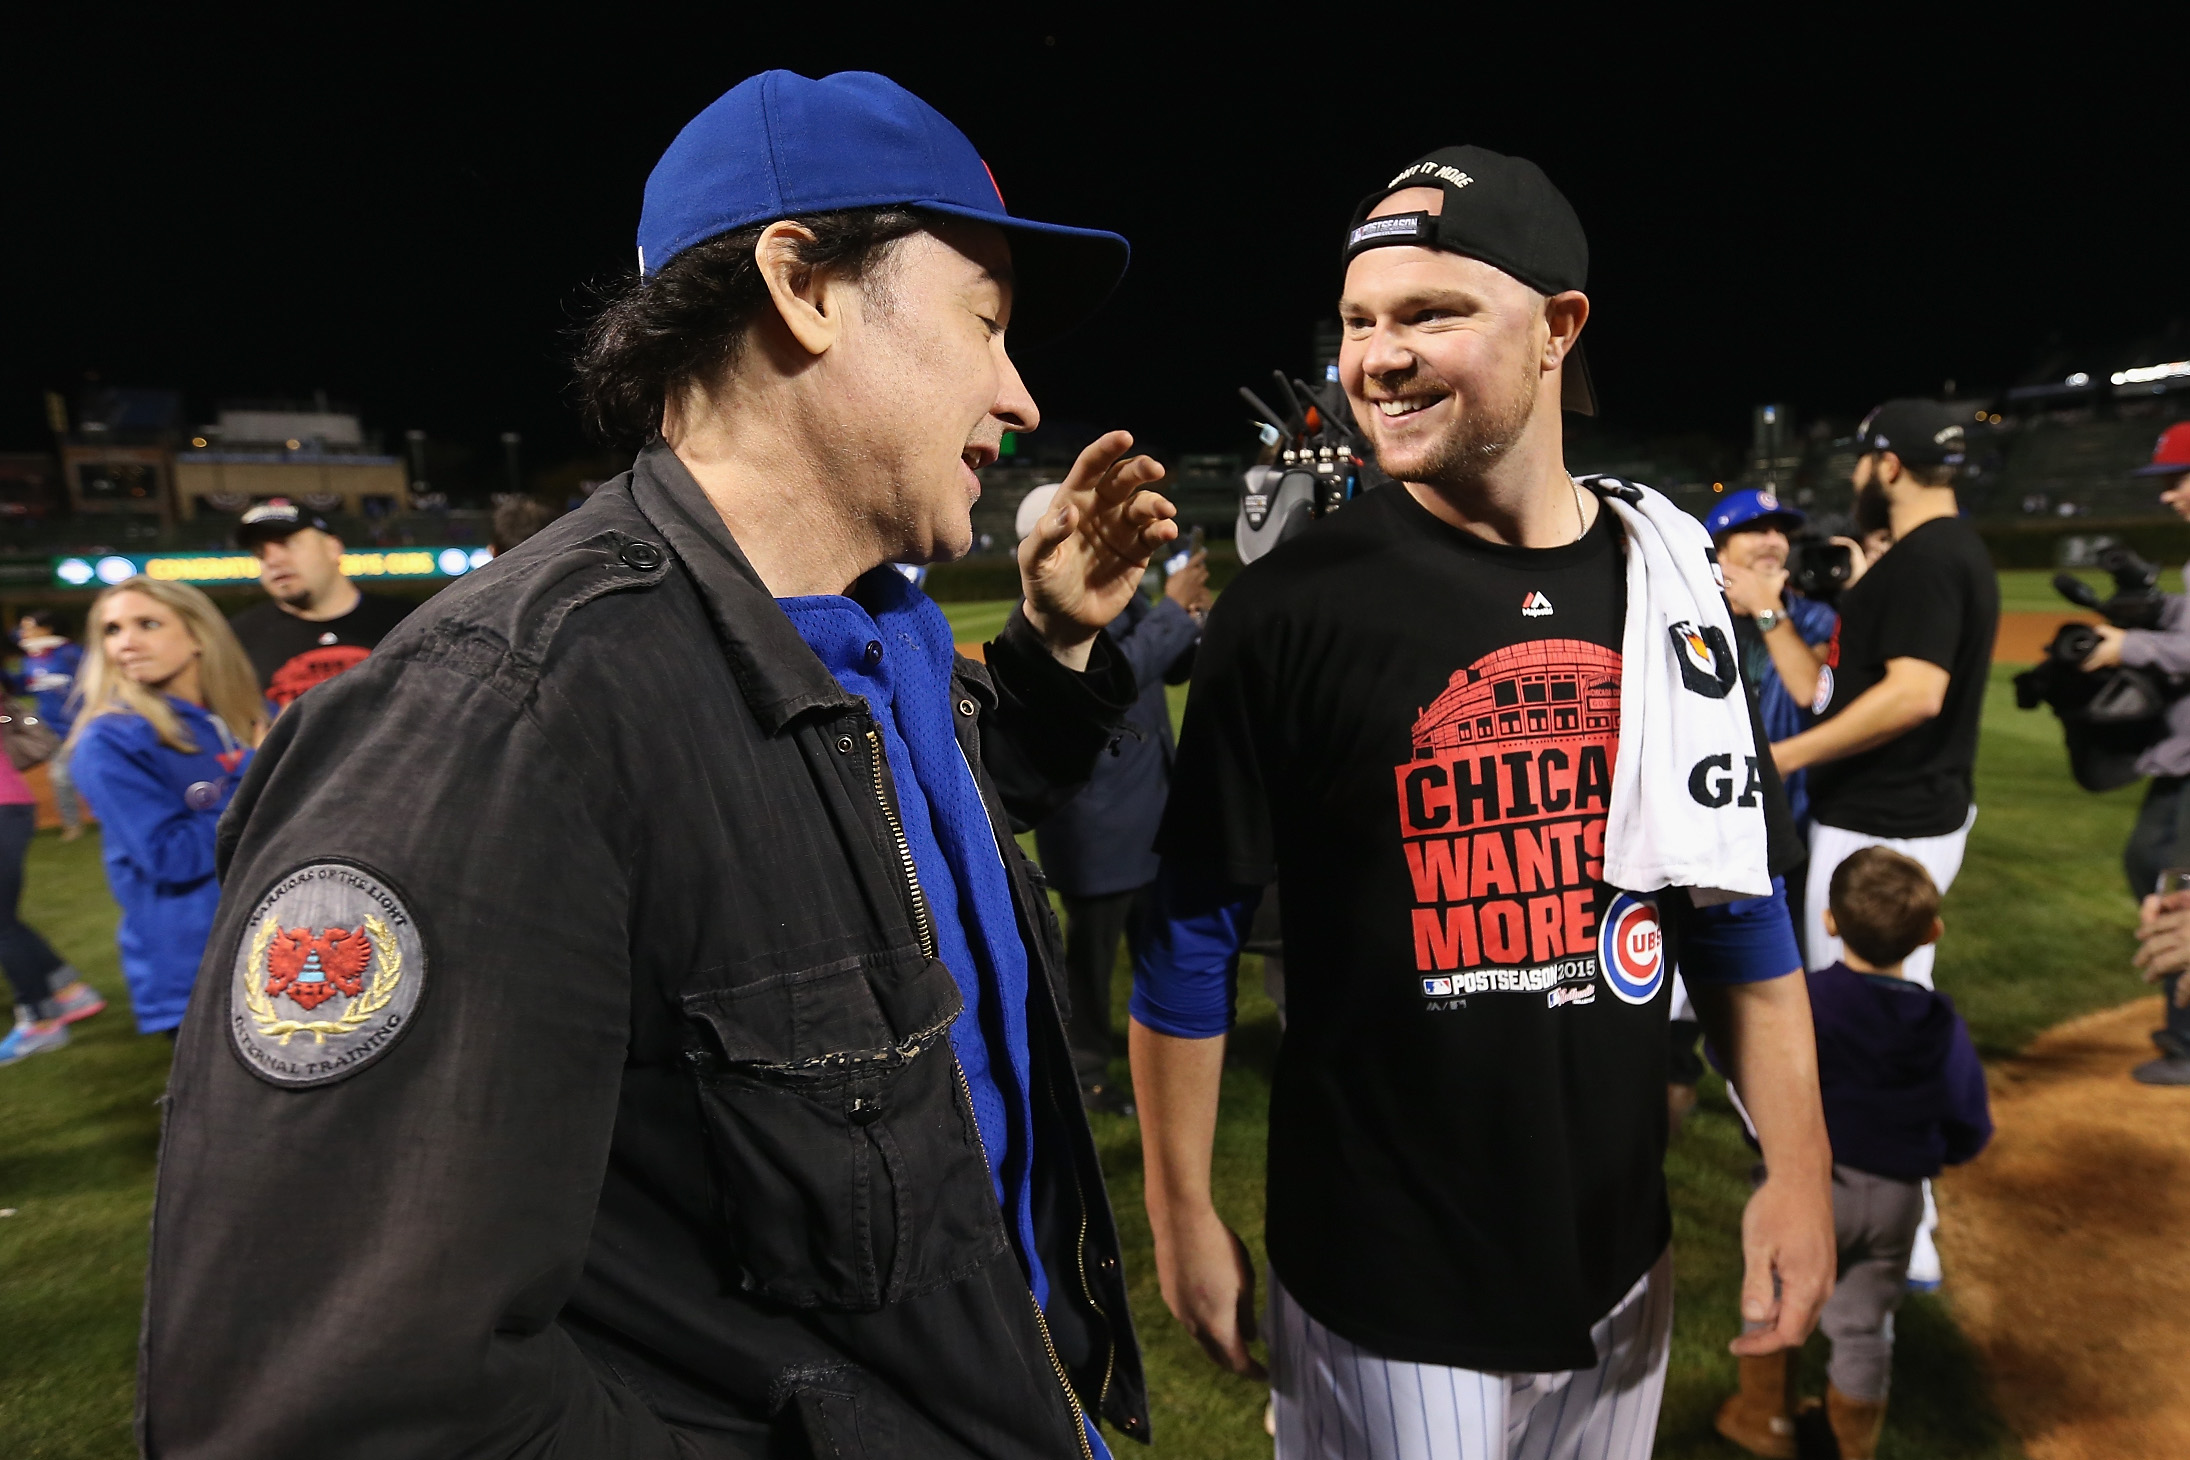 Actor and Evanston native John Cusack has been spotted at several Cubs games, even talking with pitcher Jon Lester #34 after the Cubs defeated the St. Louis Cardinals in game four of the National League Division Series at Wrigley Field on October 13, 2015 in Chicago, Illinois.